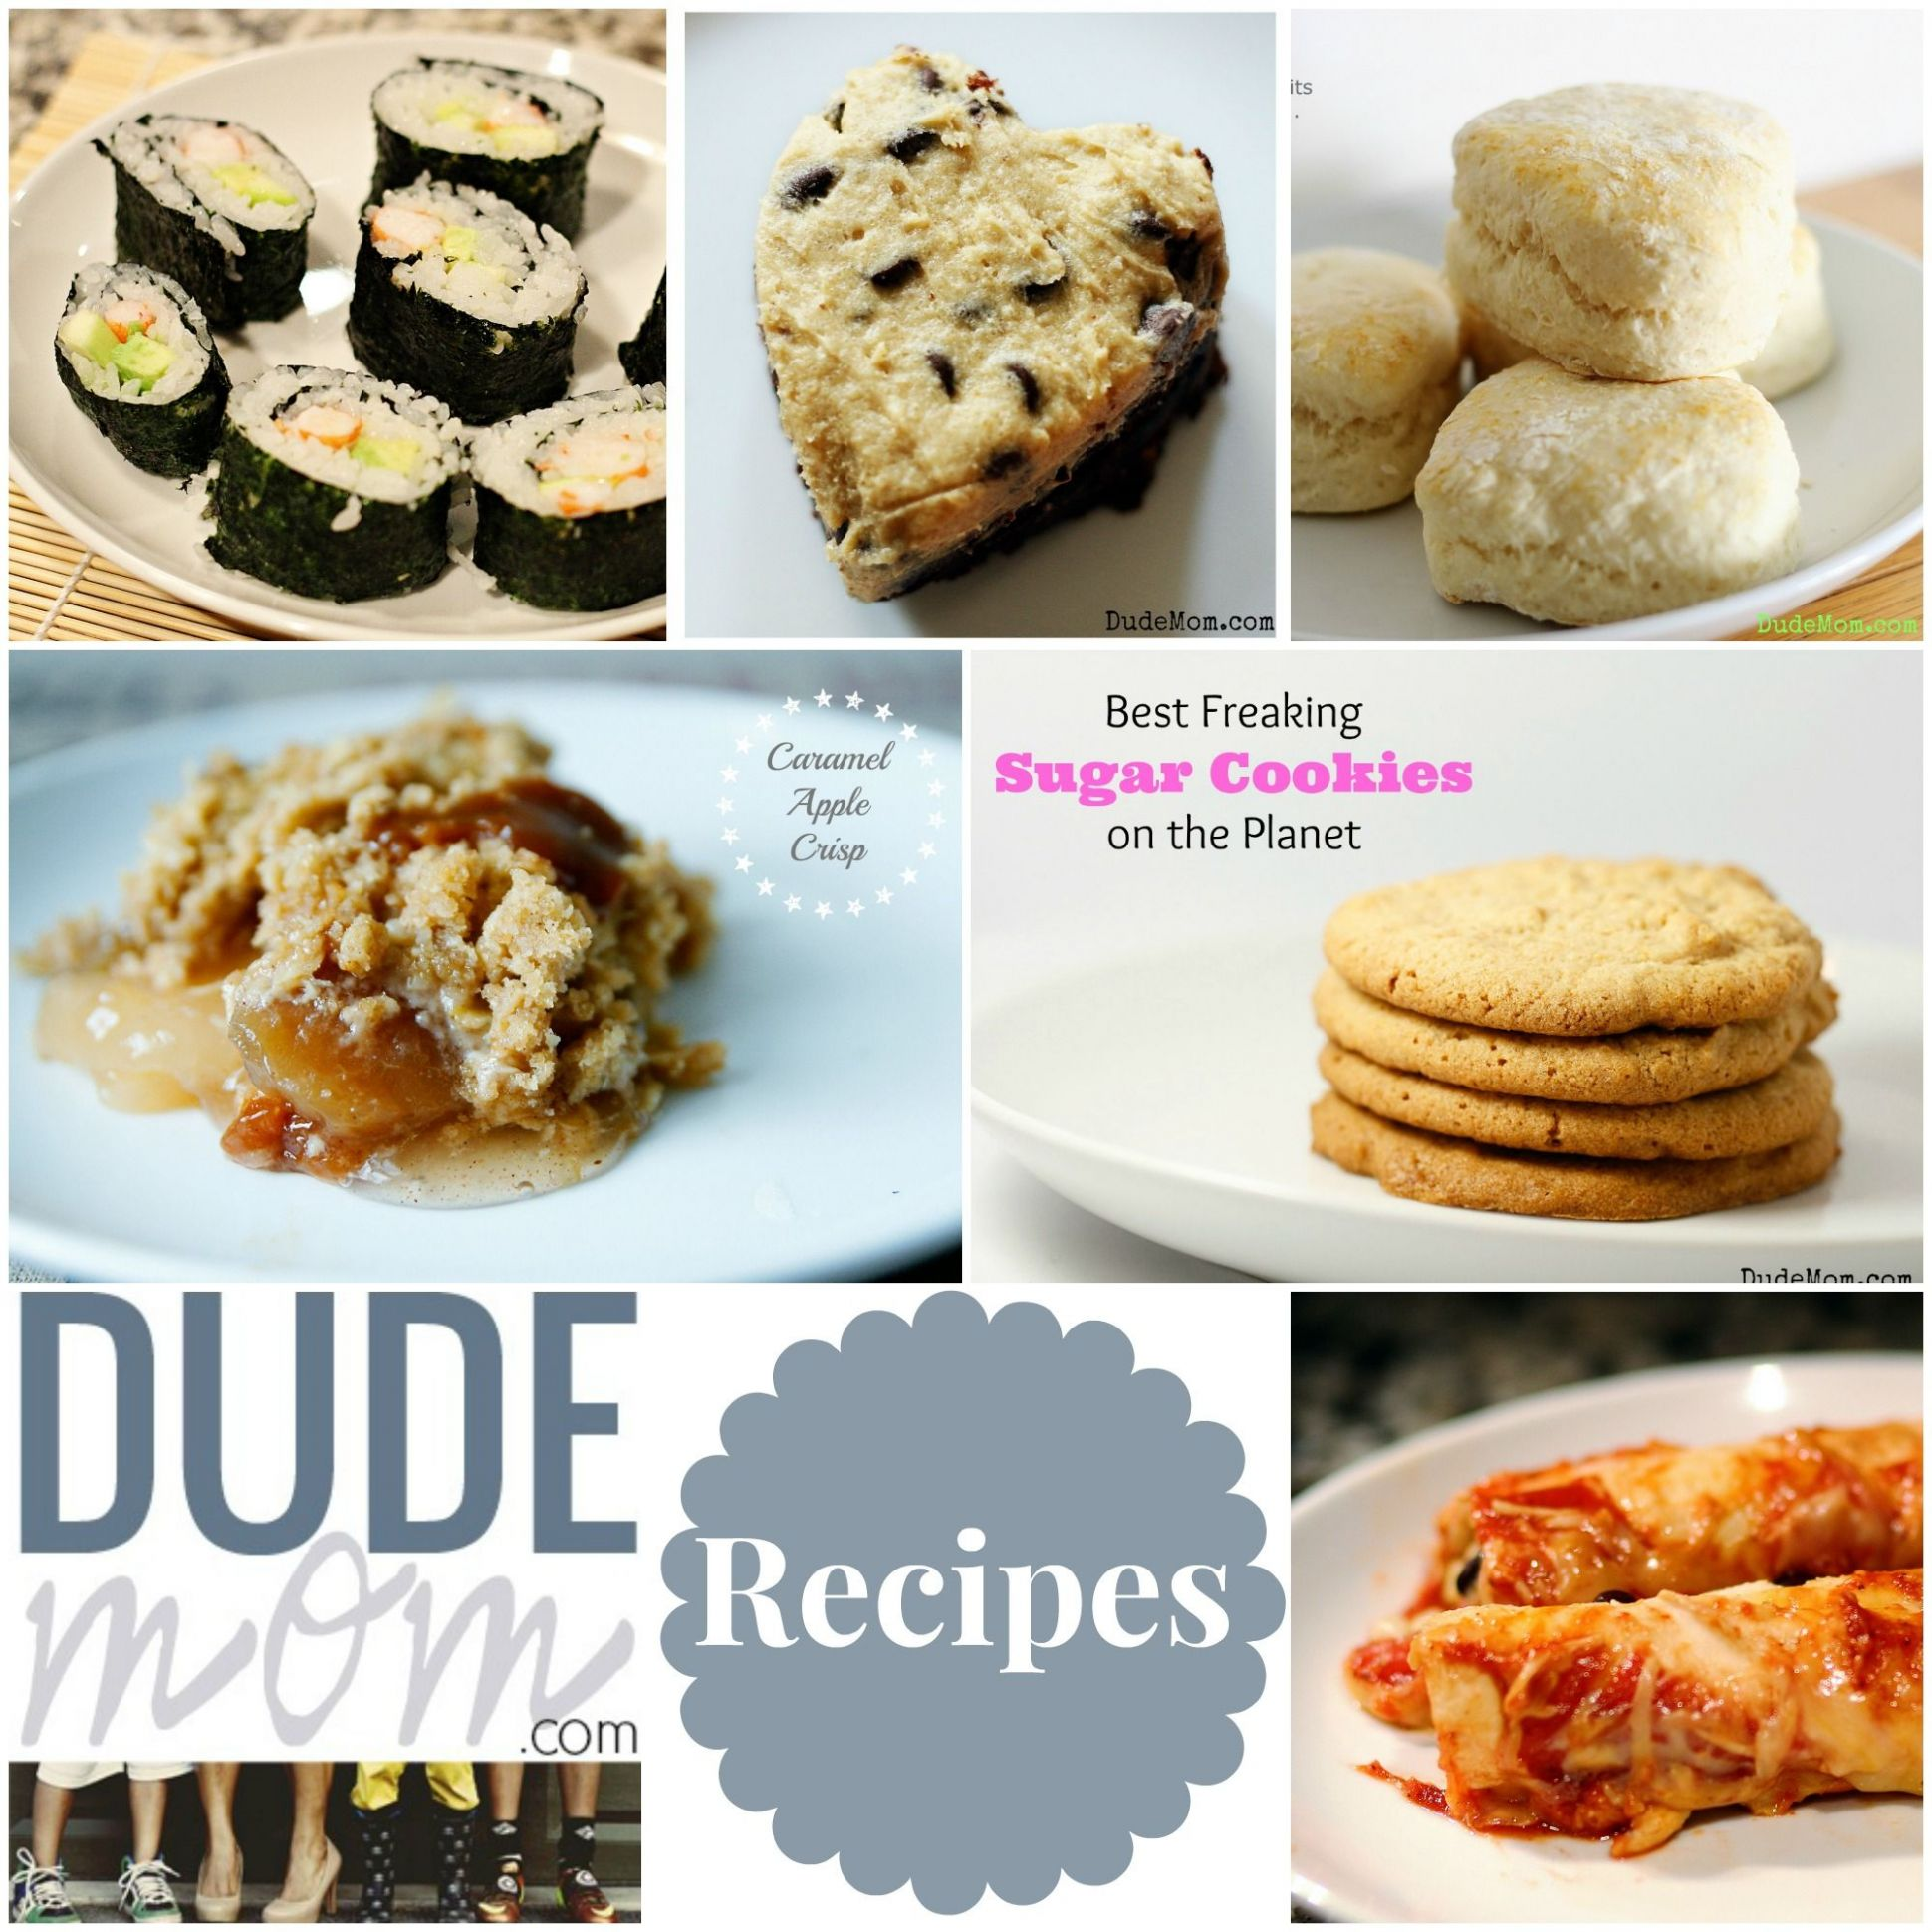 Quick, easy, delicious recipes for families. | Recipes, Easy meals ...